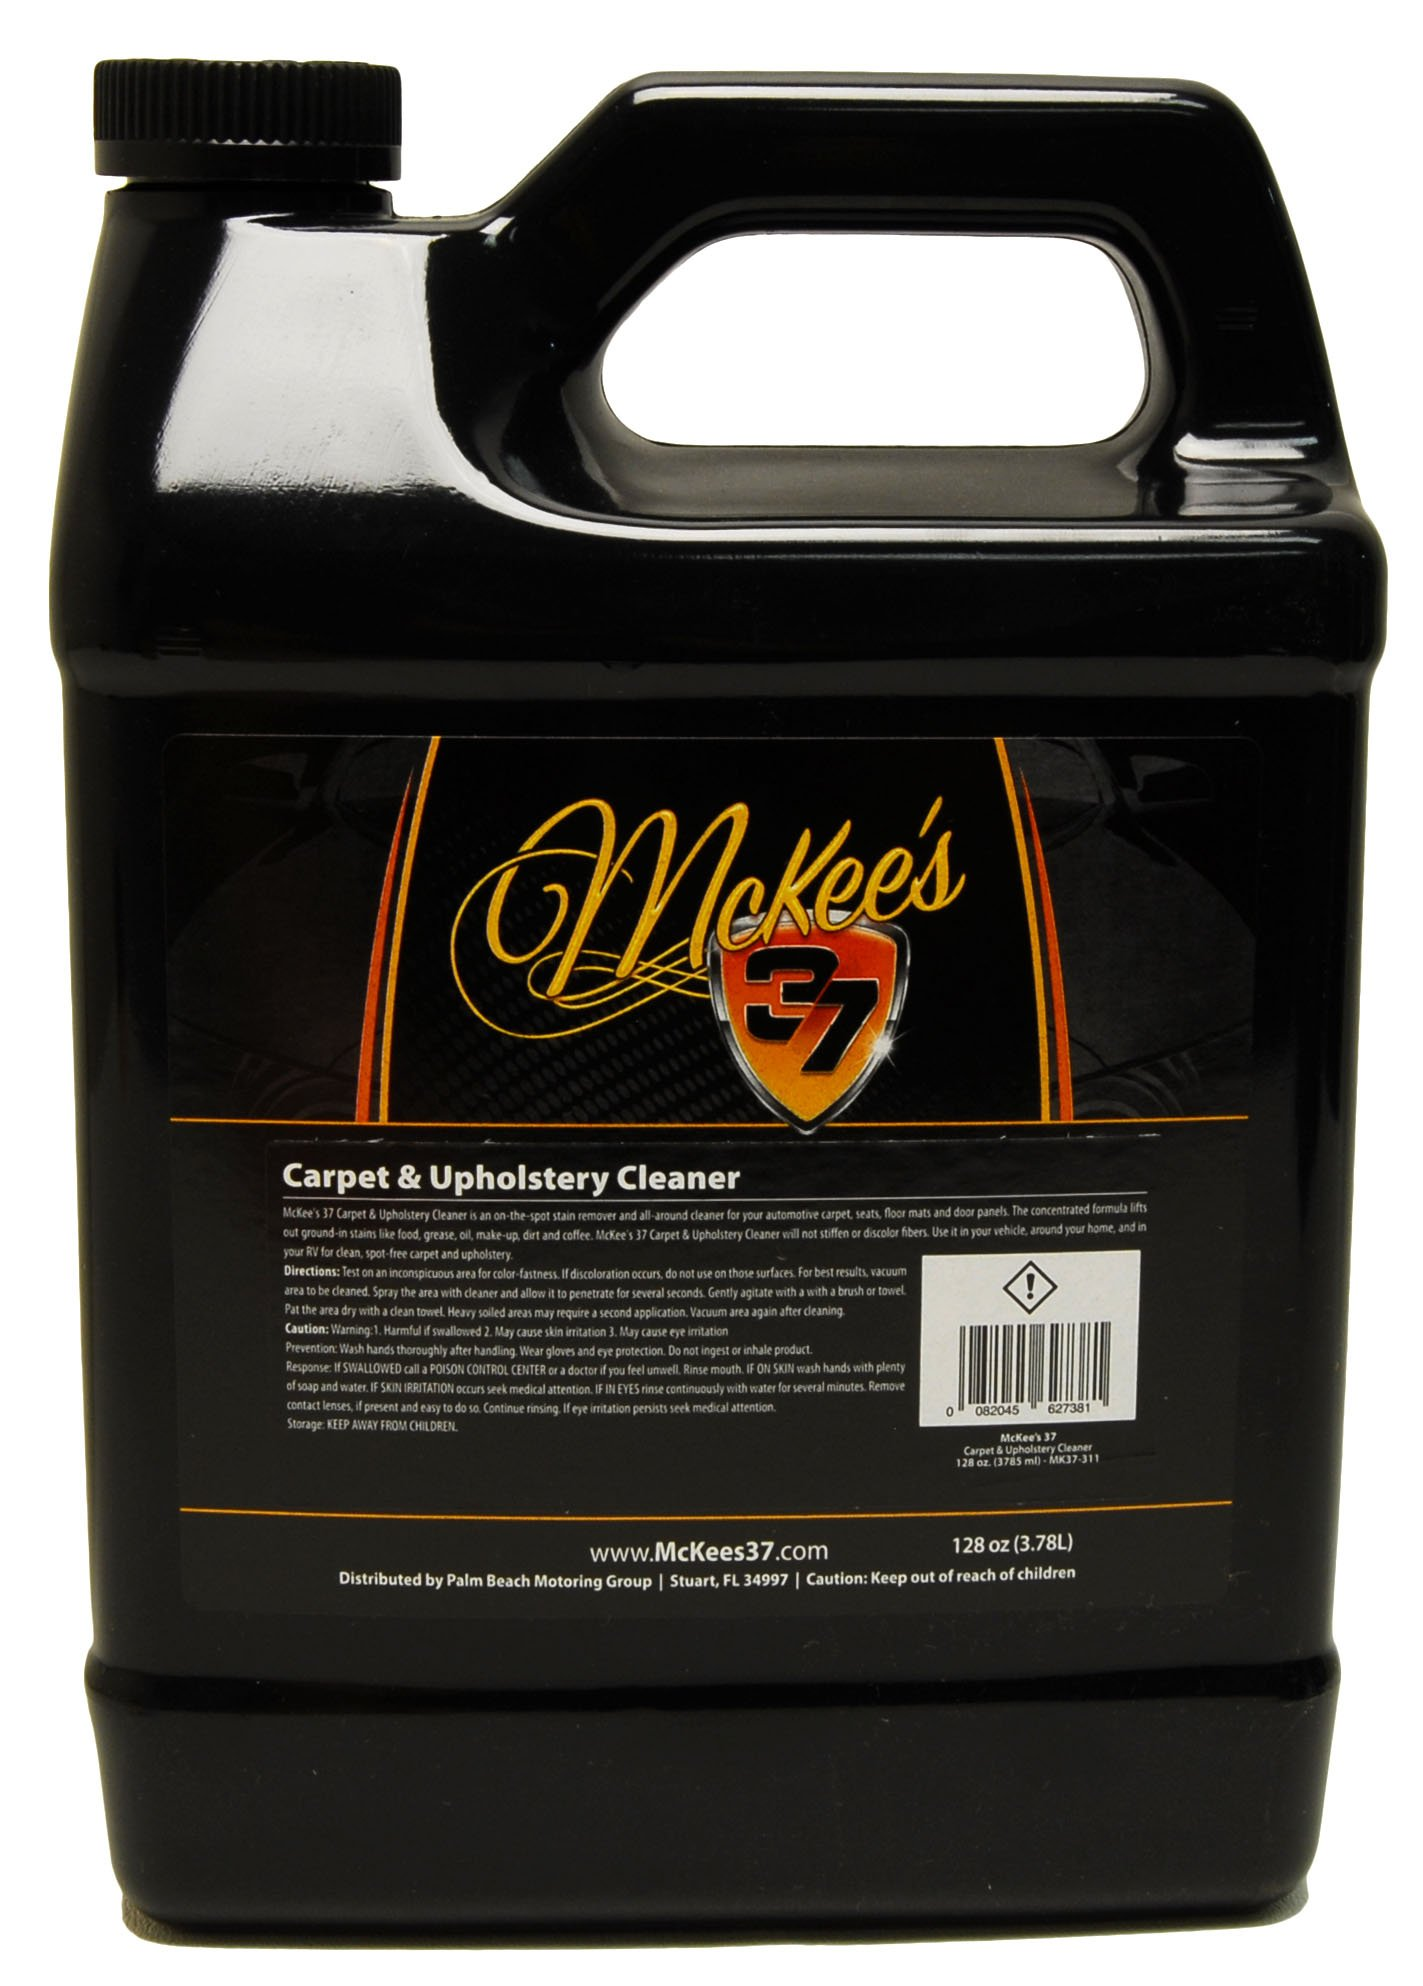 McKee's 37 MK37-311 Carpet and Upholstery Cleaner 128 Fluid_Ounces